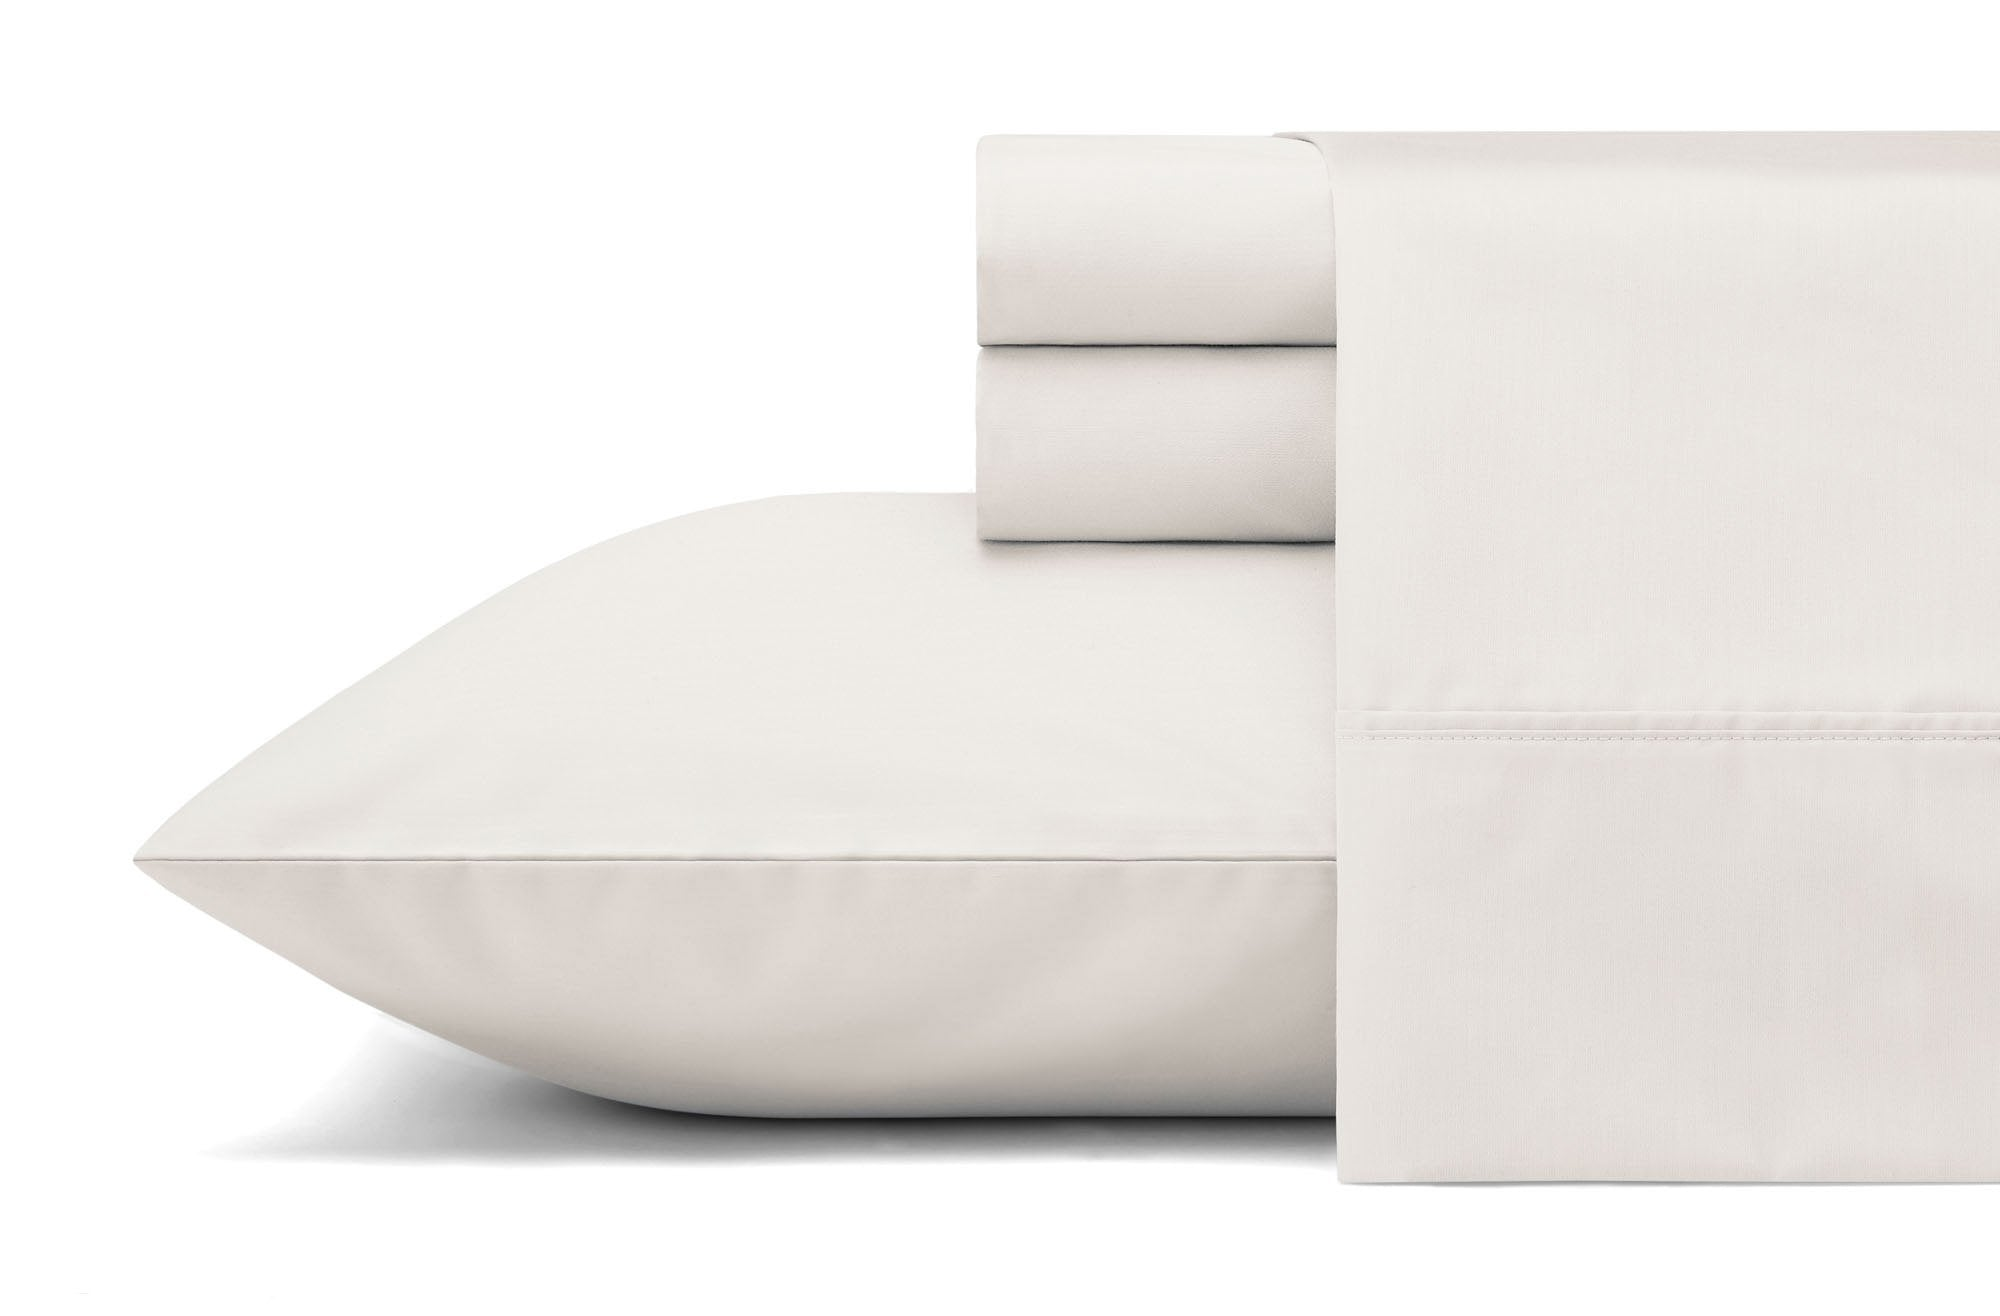 Sleepletics Celliant Performance Pillowcase (Set of Two) in Chalk, Size King